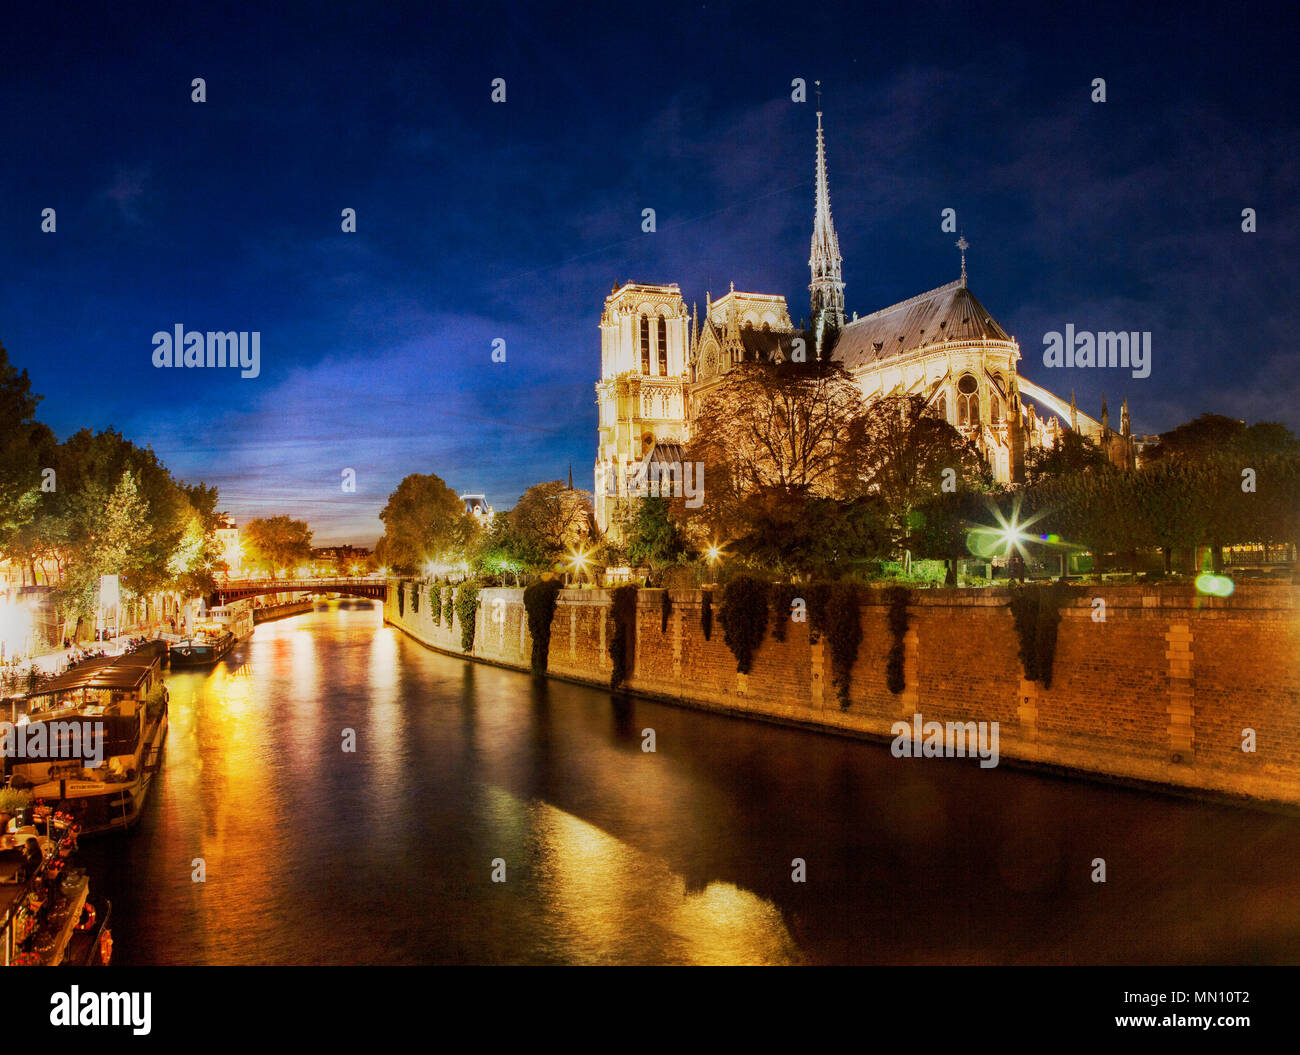 Nighttime comes over Notre Dame along the River Seine.  Paris, France. - Stock Image